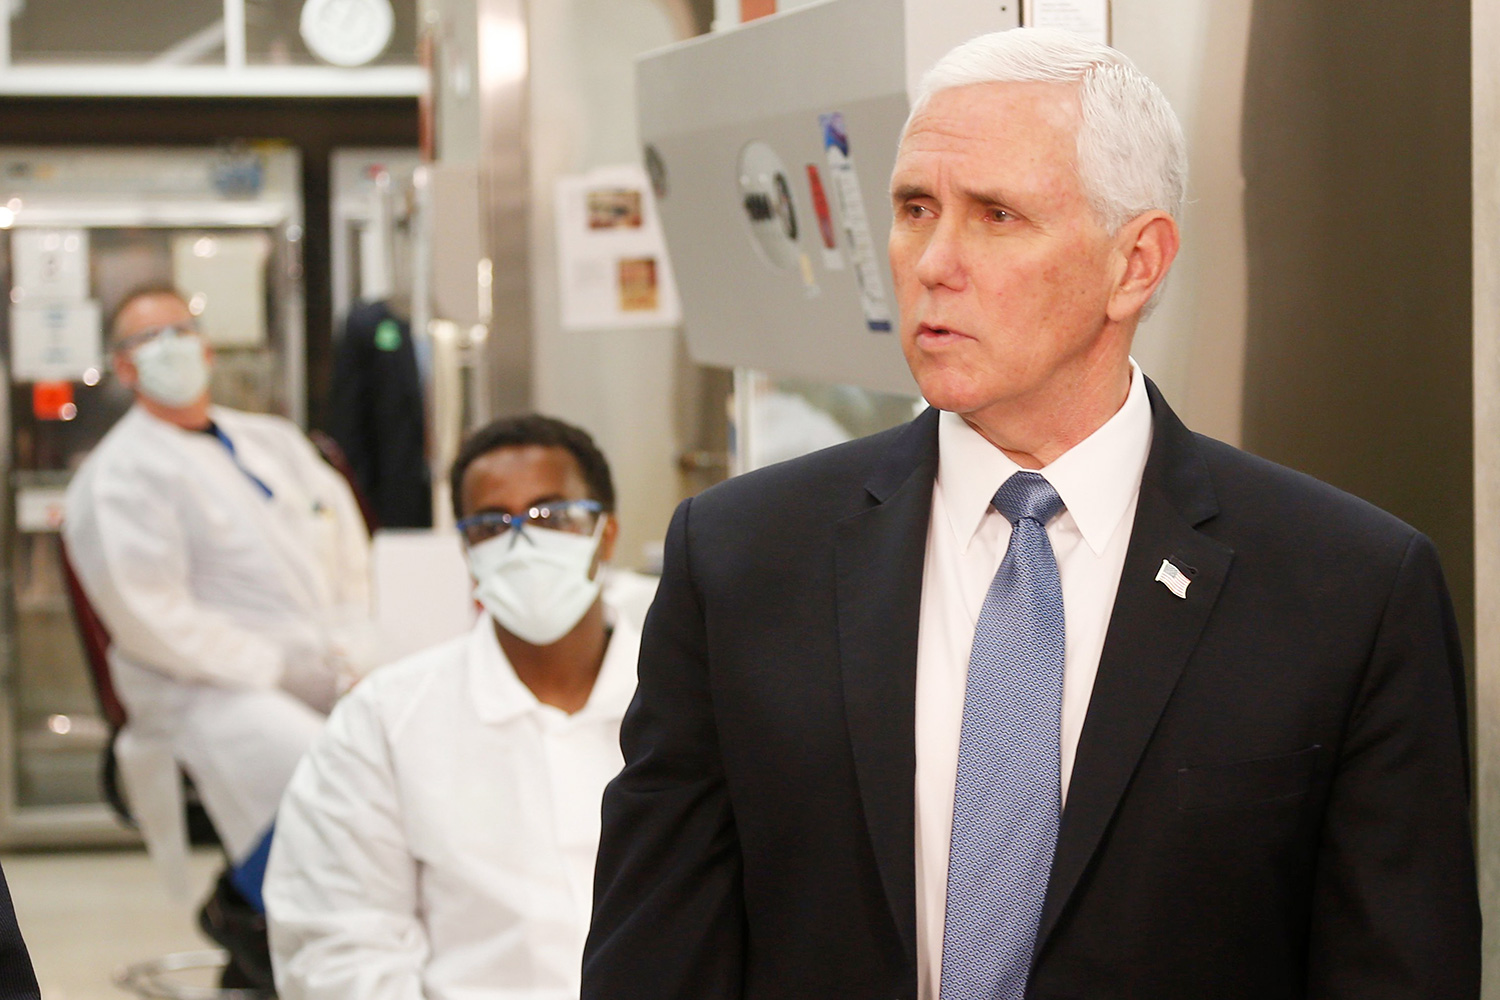 Vice President Mike Pence, left, visits the Mayo Clinic, in Rochester, Minn